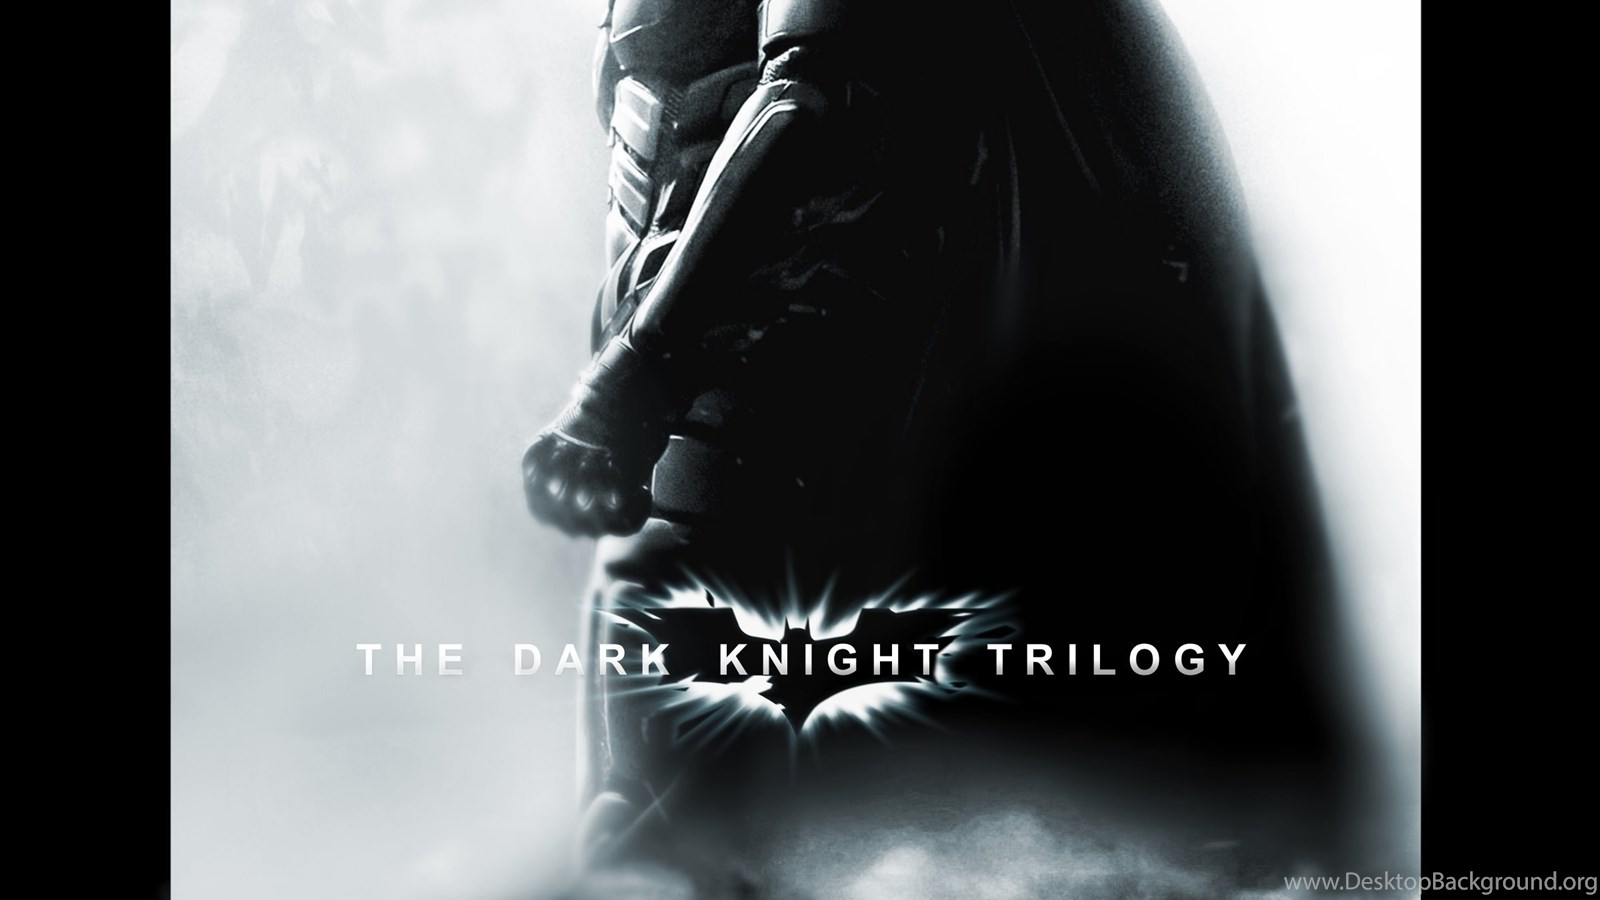 the dark knight trilogy heros journey Telling the origin story of bruce wayne from the death of his parents to his journey to dark knight trilogy dark knight, the batman begins.